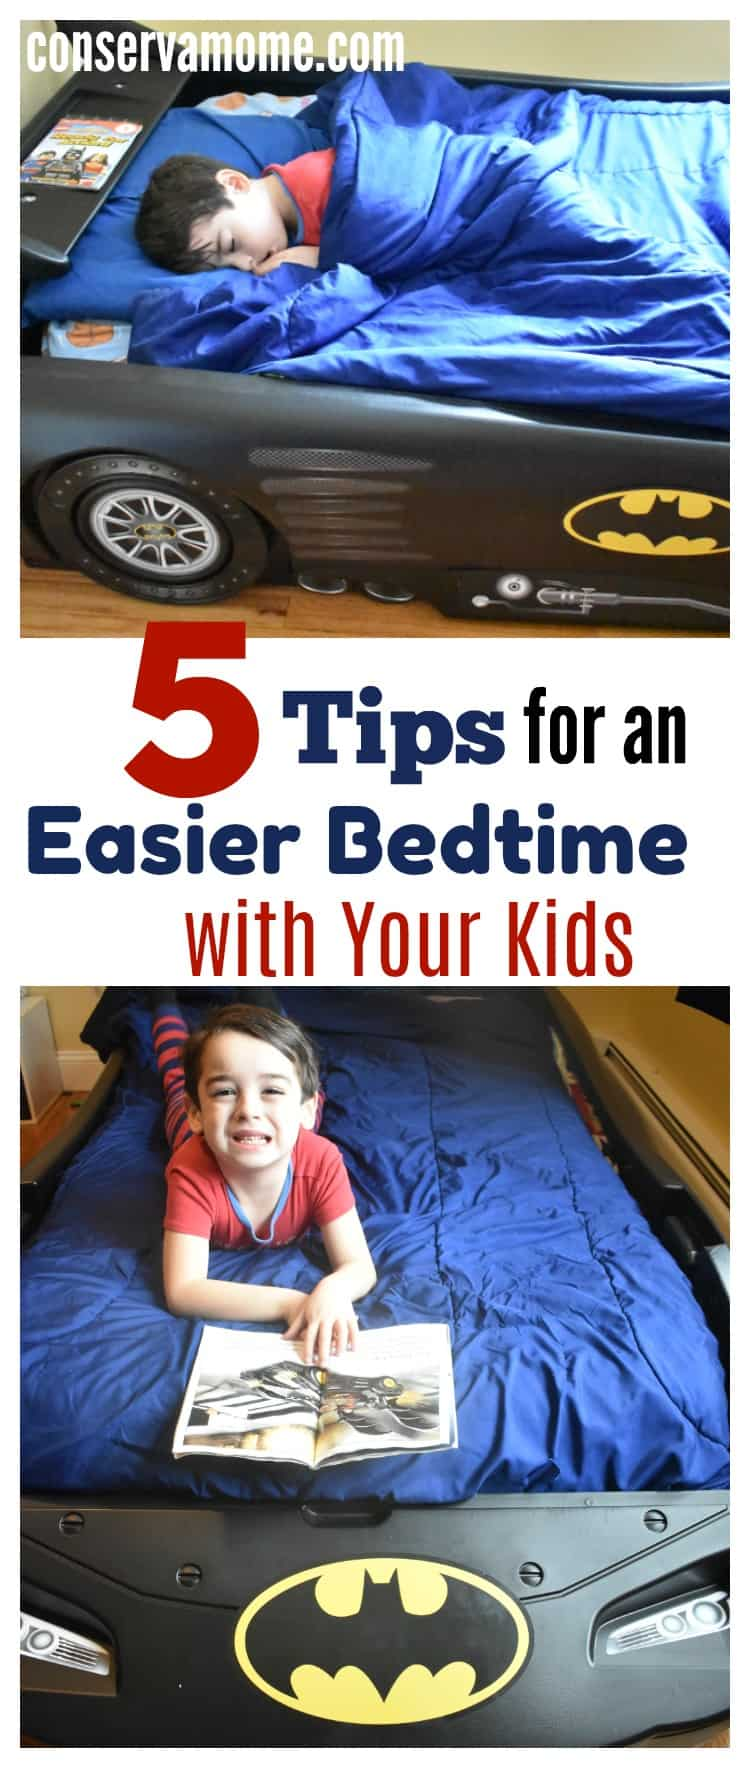 Bedtime can be tough on everyone.Check out 5 Tips for an Easier Bedtime with your Kids so that everyone gets the best night sleep.